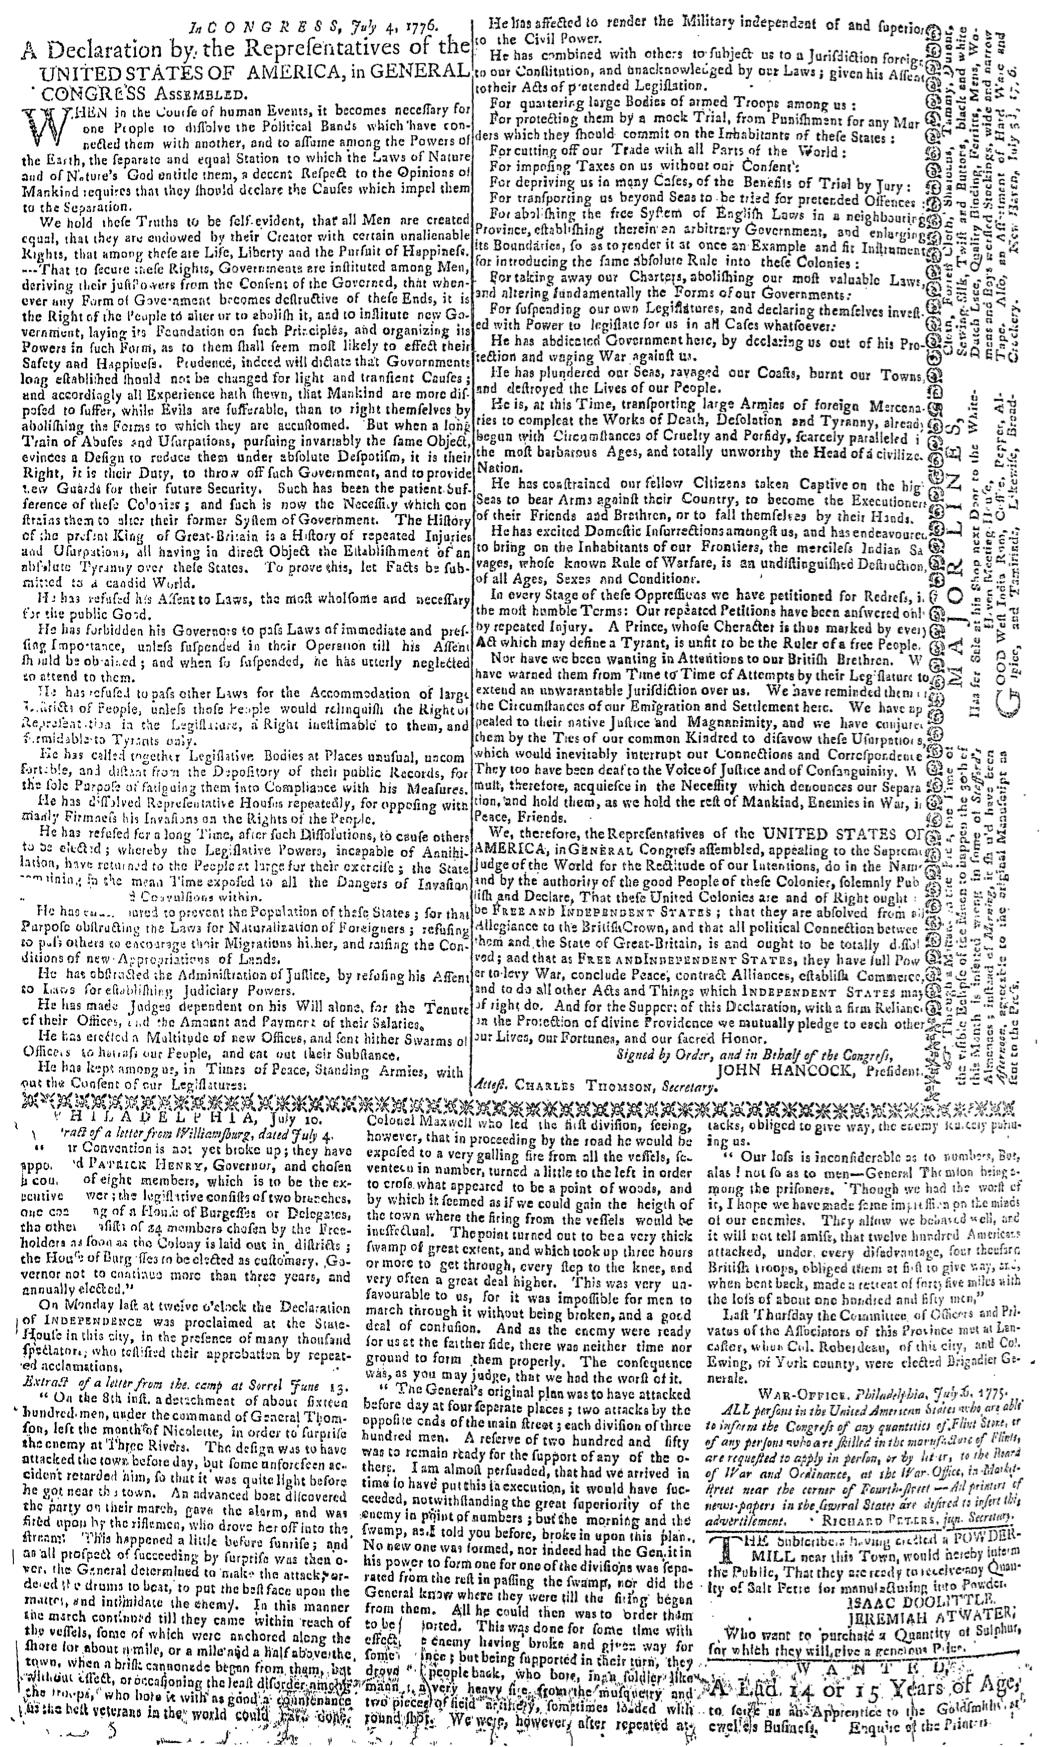 Page 2 of the Connecticut Journal, Printed by Thomas and Samuel Green, July 17, 1776